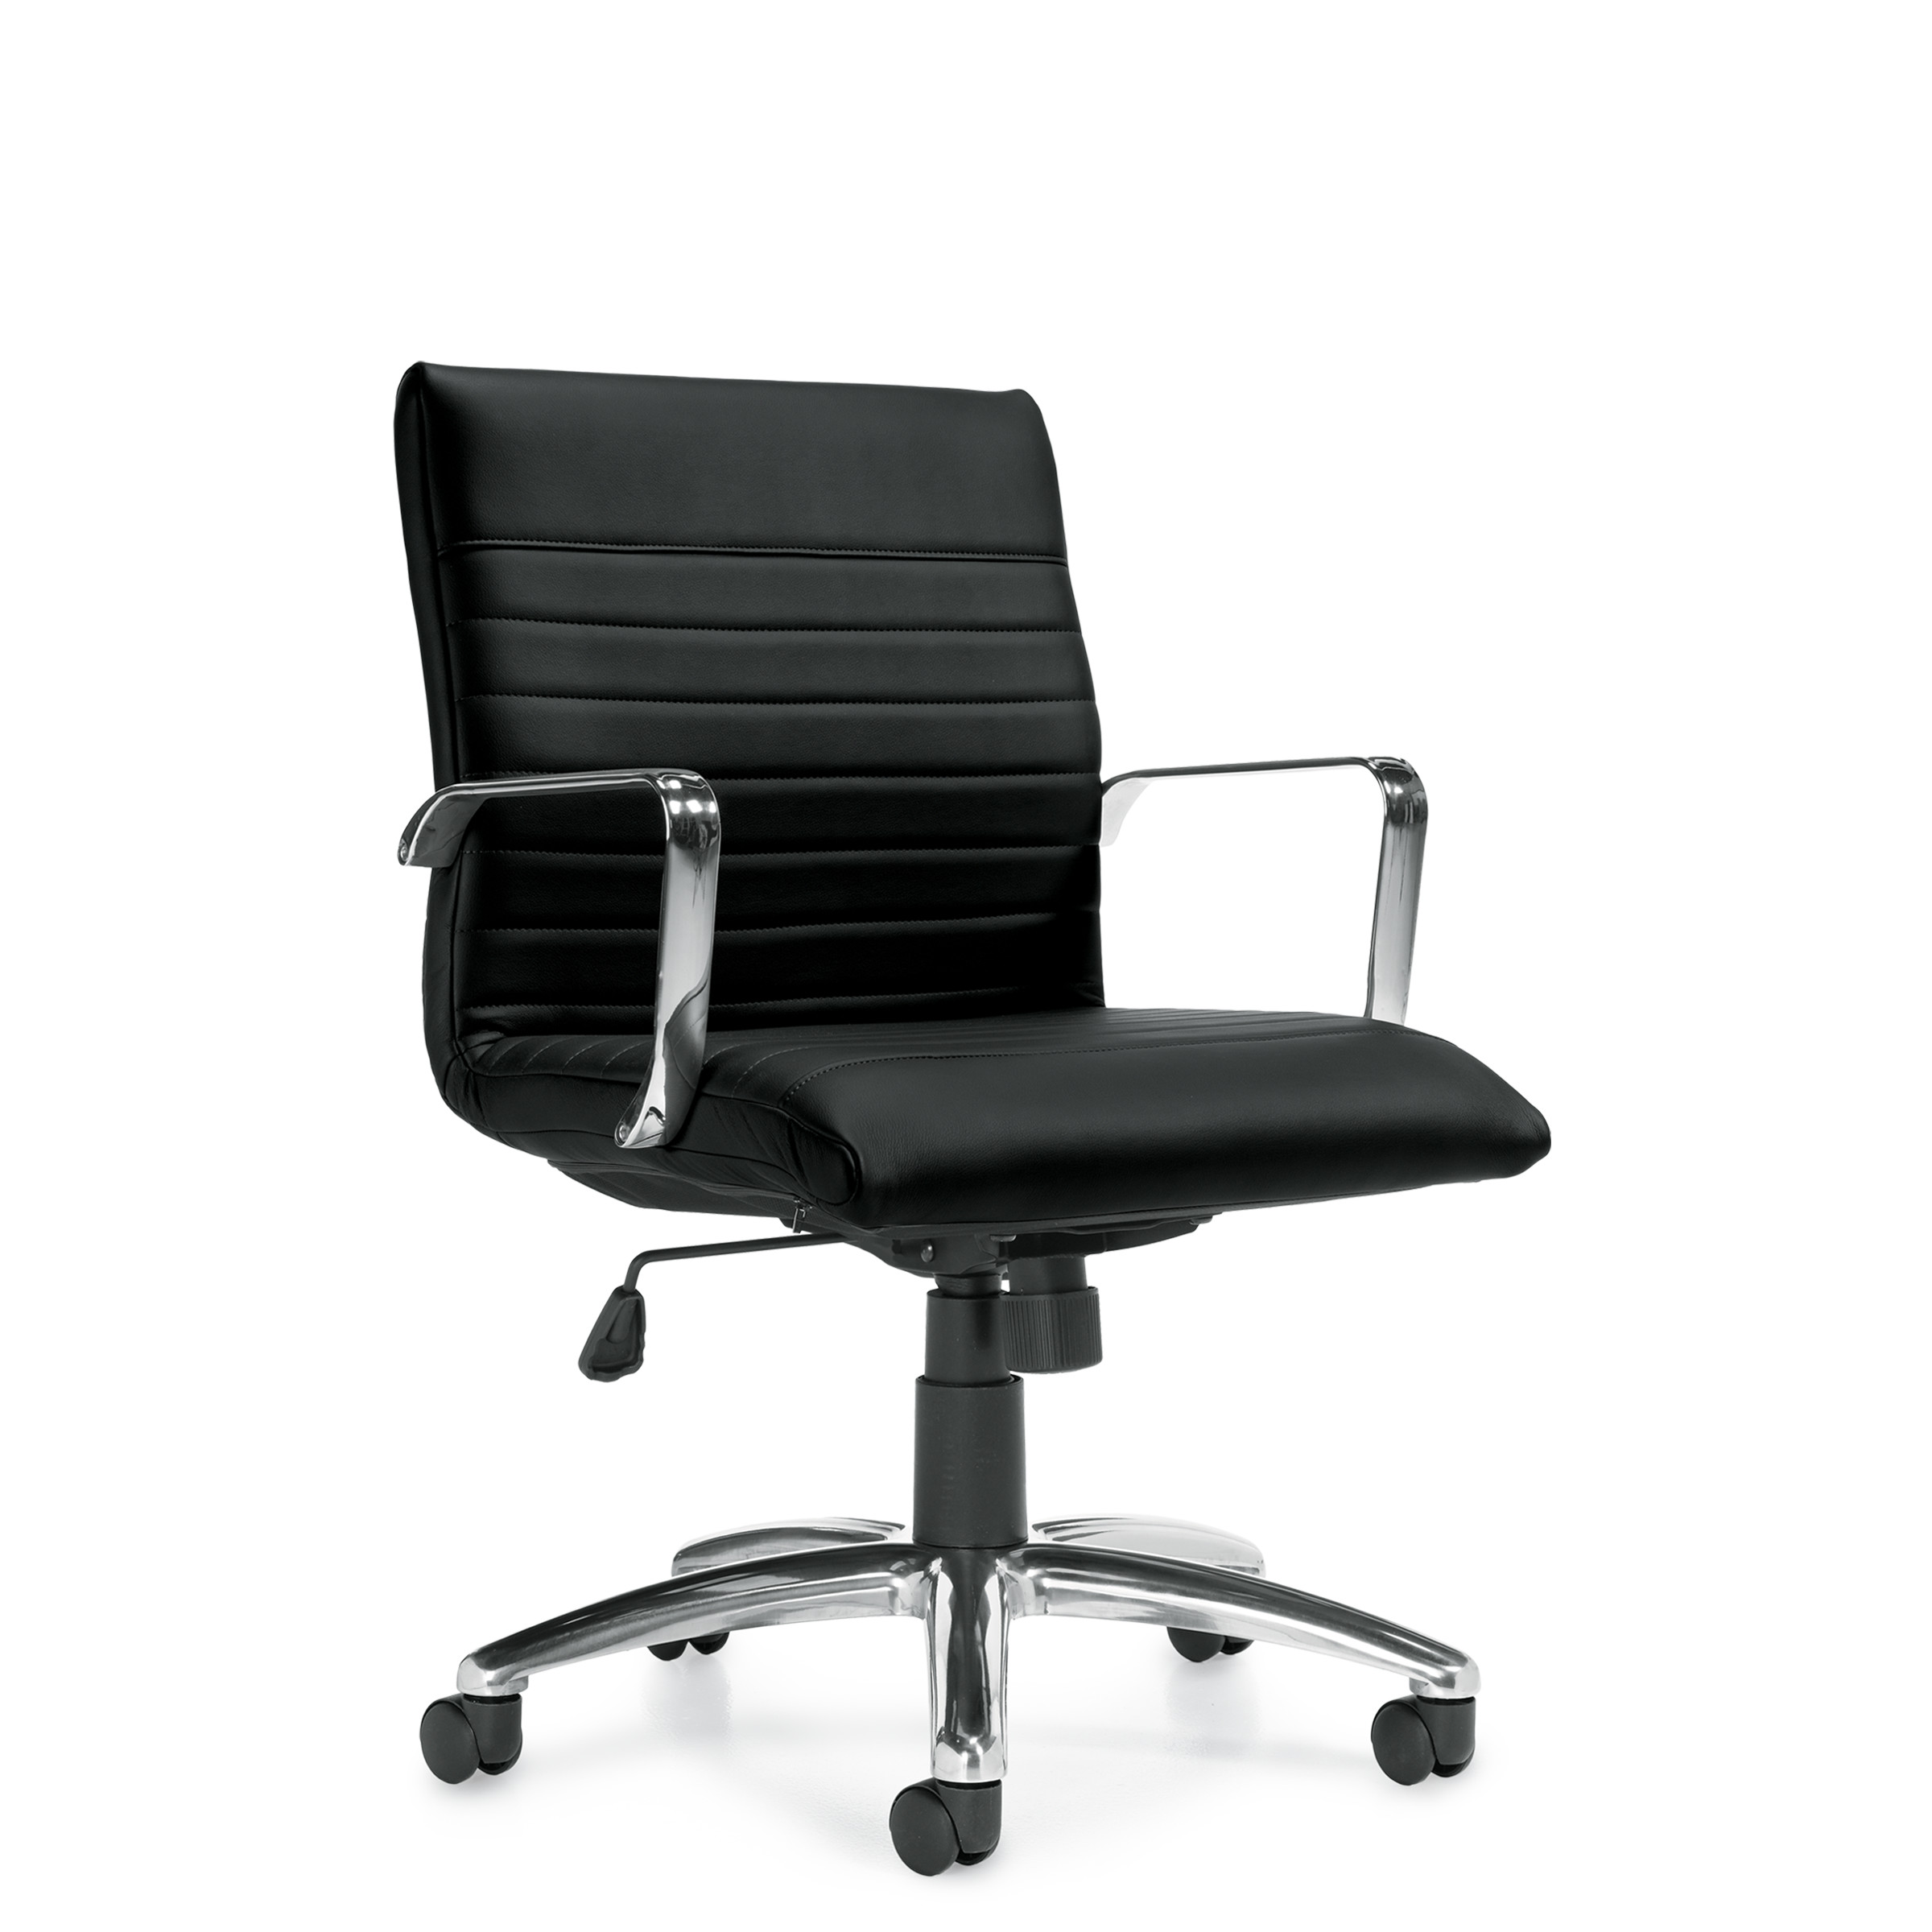 OTG Mid Back Luxhide Executive Chair #OTG11734B